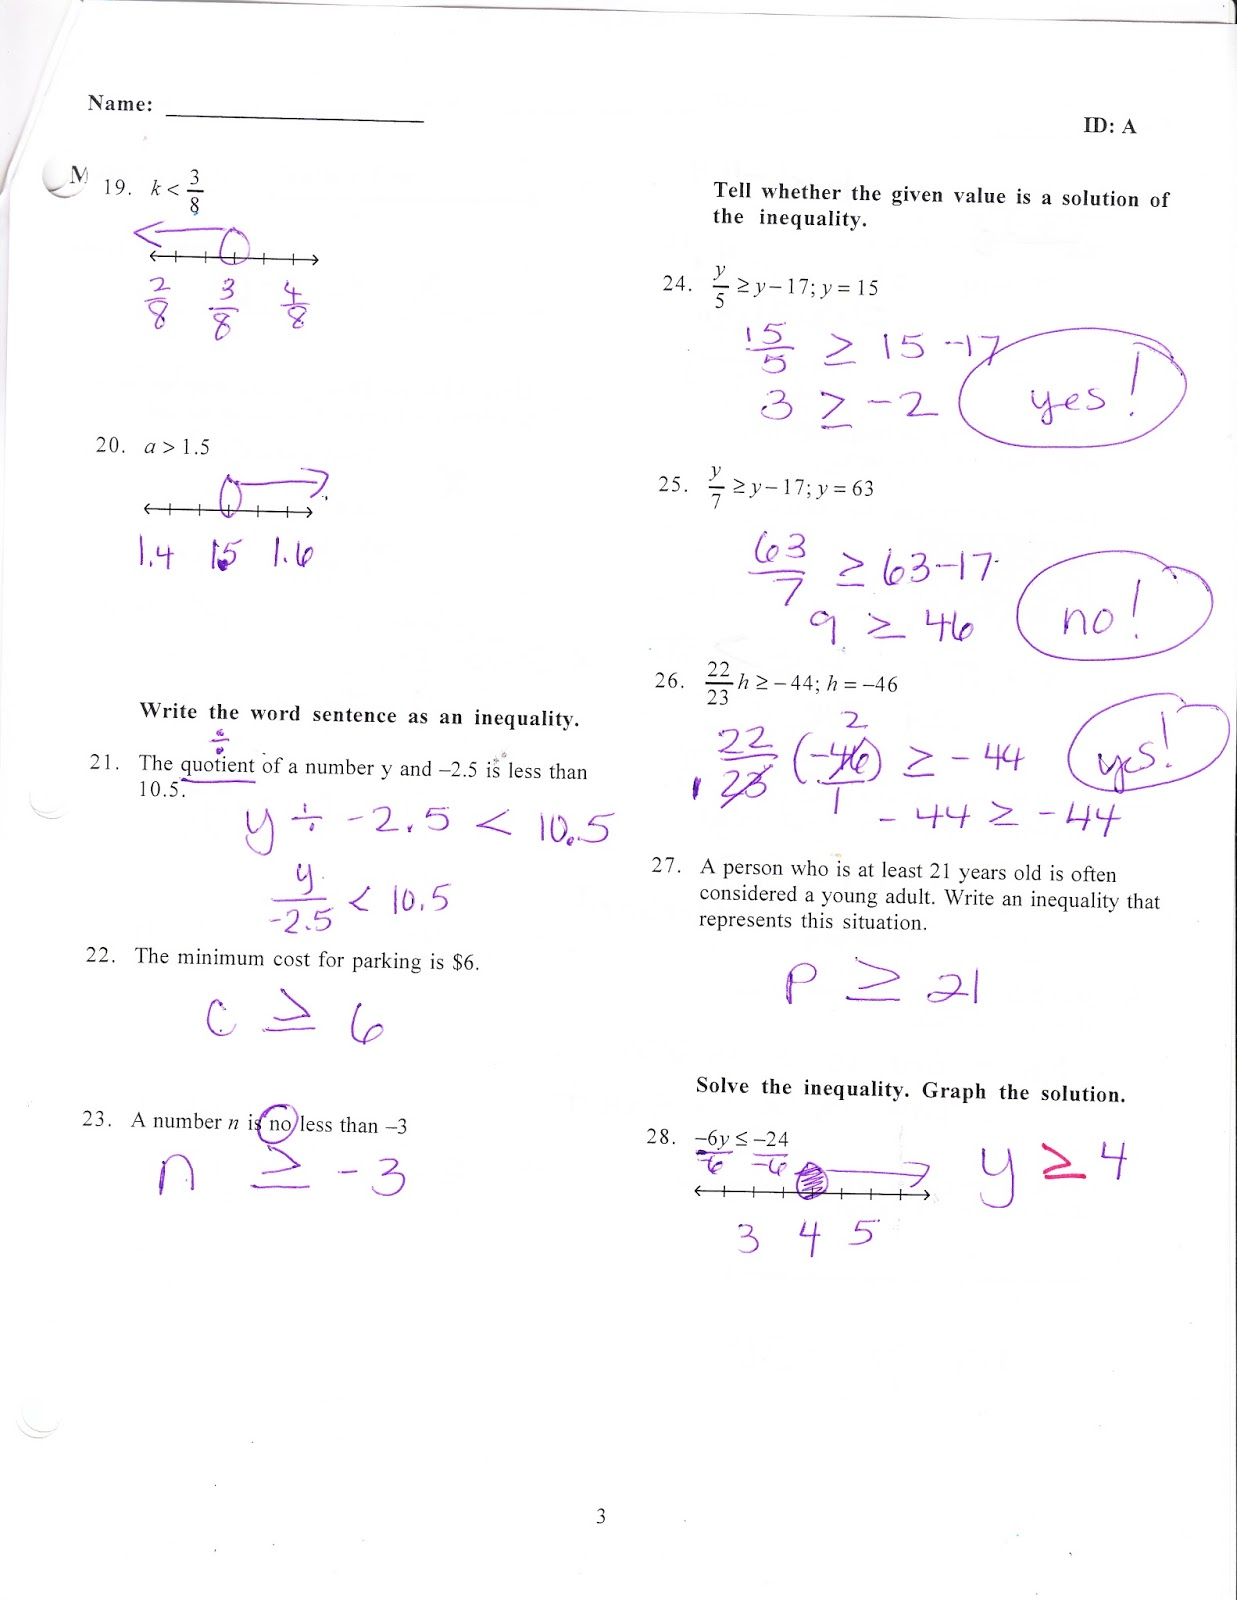 Chapter 4 practice questions